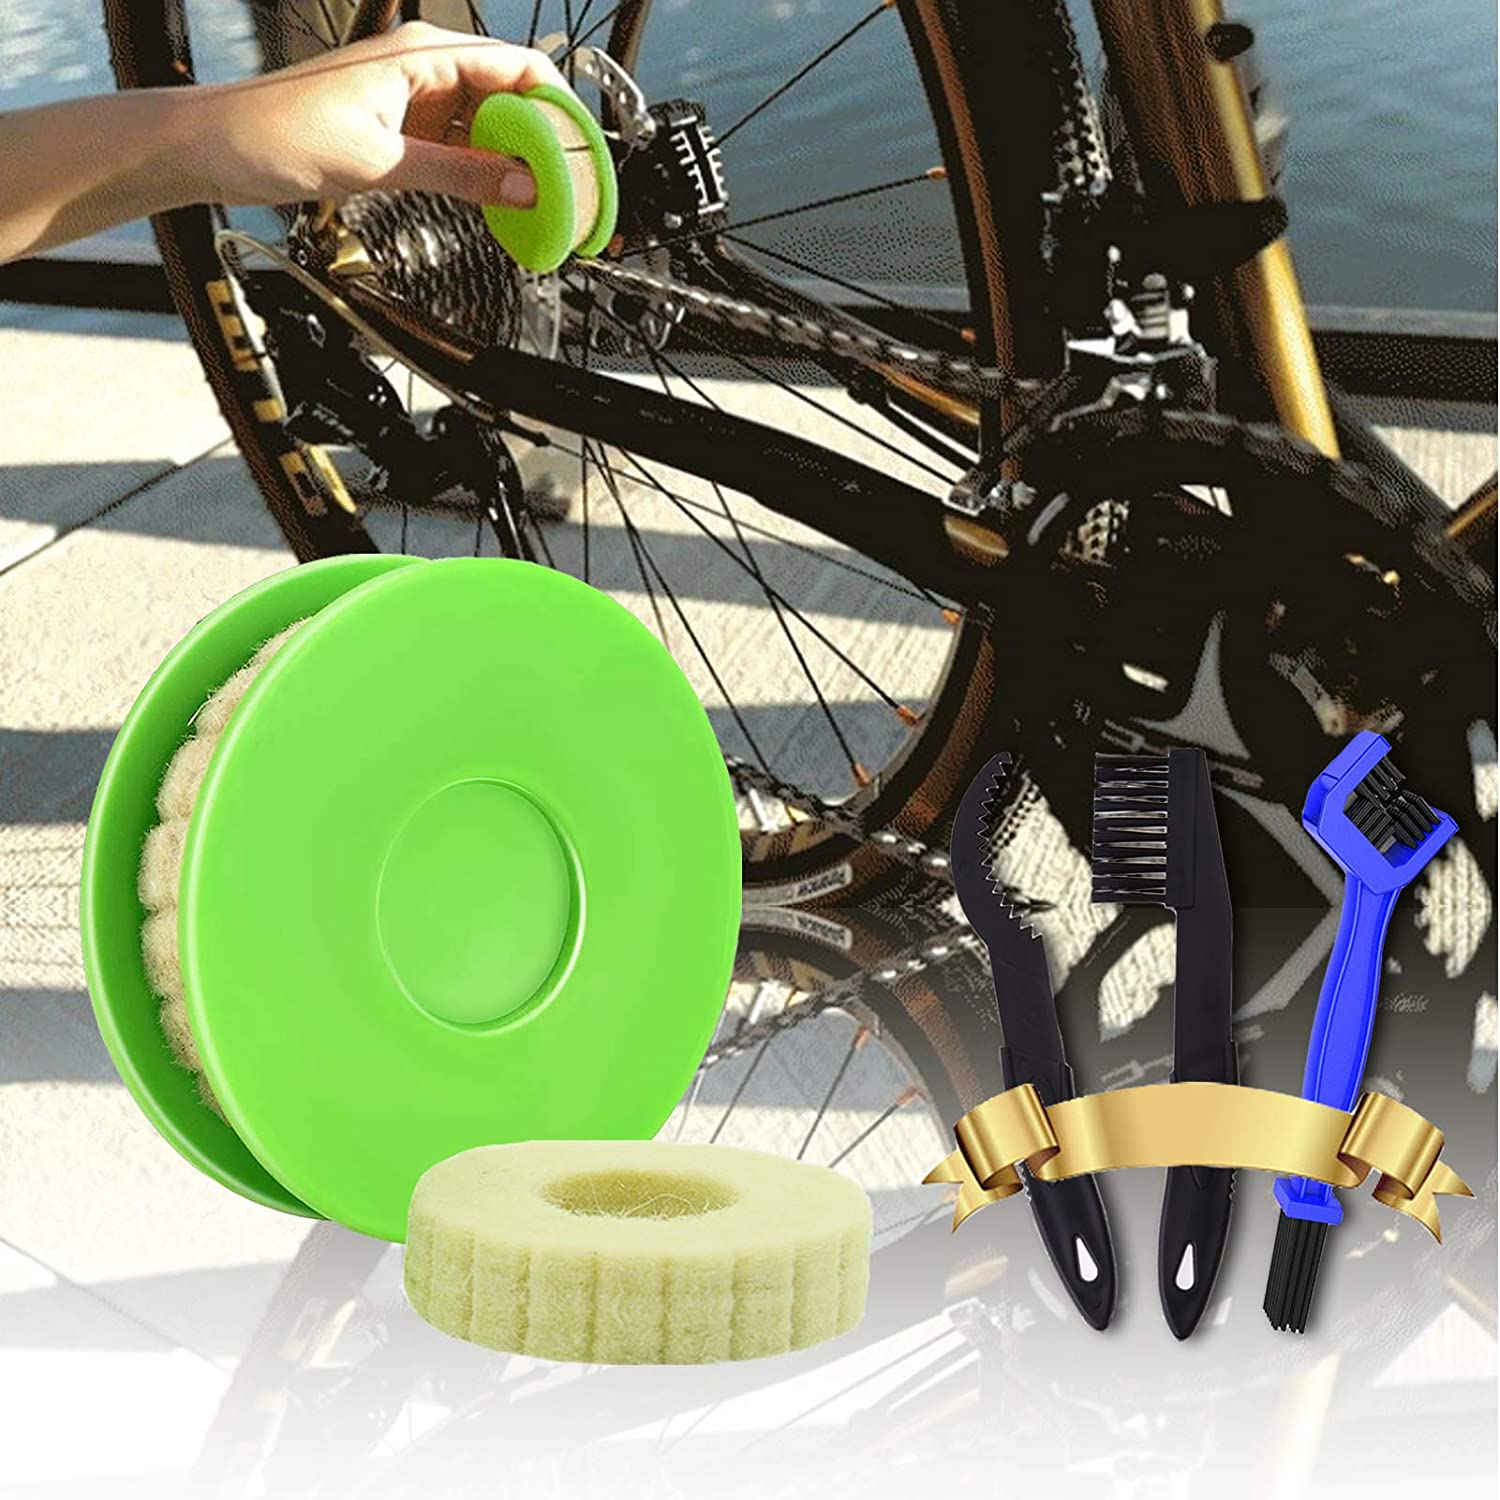 Suitable for Bicycle//Motorcycle Chain Chain Cleaning Tool Bike Chain Care Tool Kit Bicycle Chain Maintenance Tool Not Include Lube Bike Chain Lube Bike Chain Gear Oiler Roller